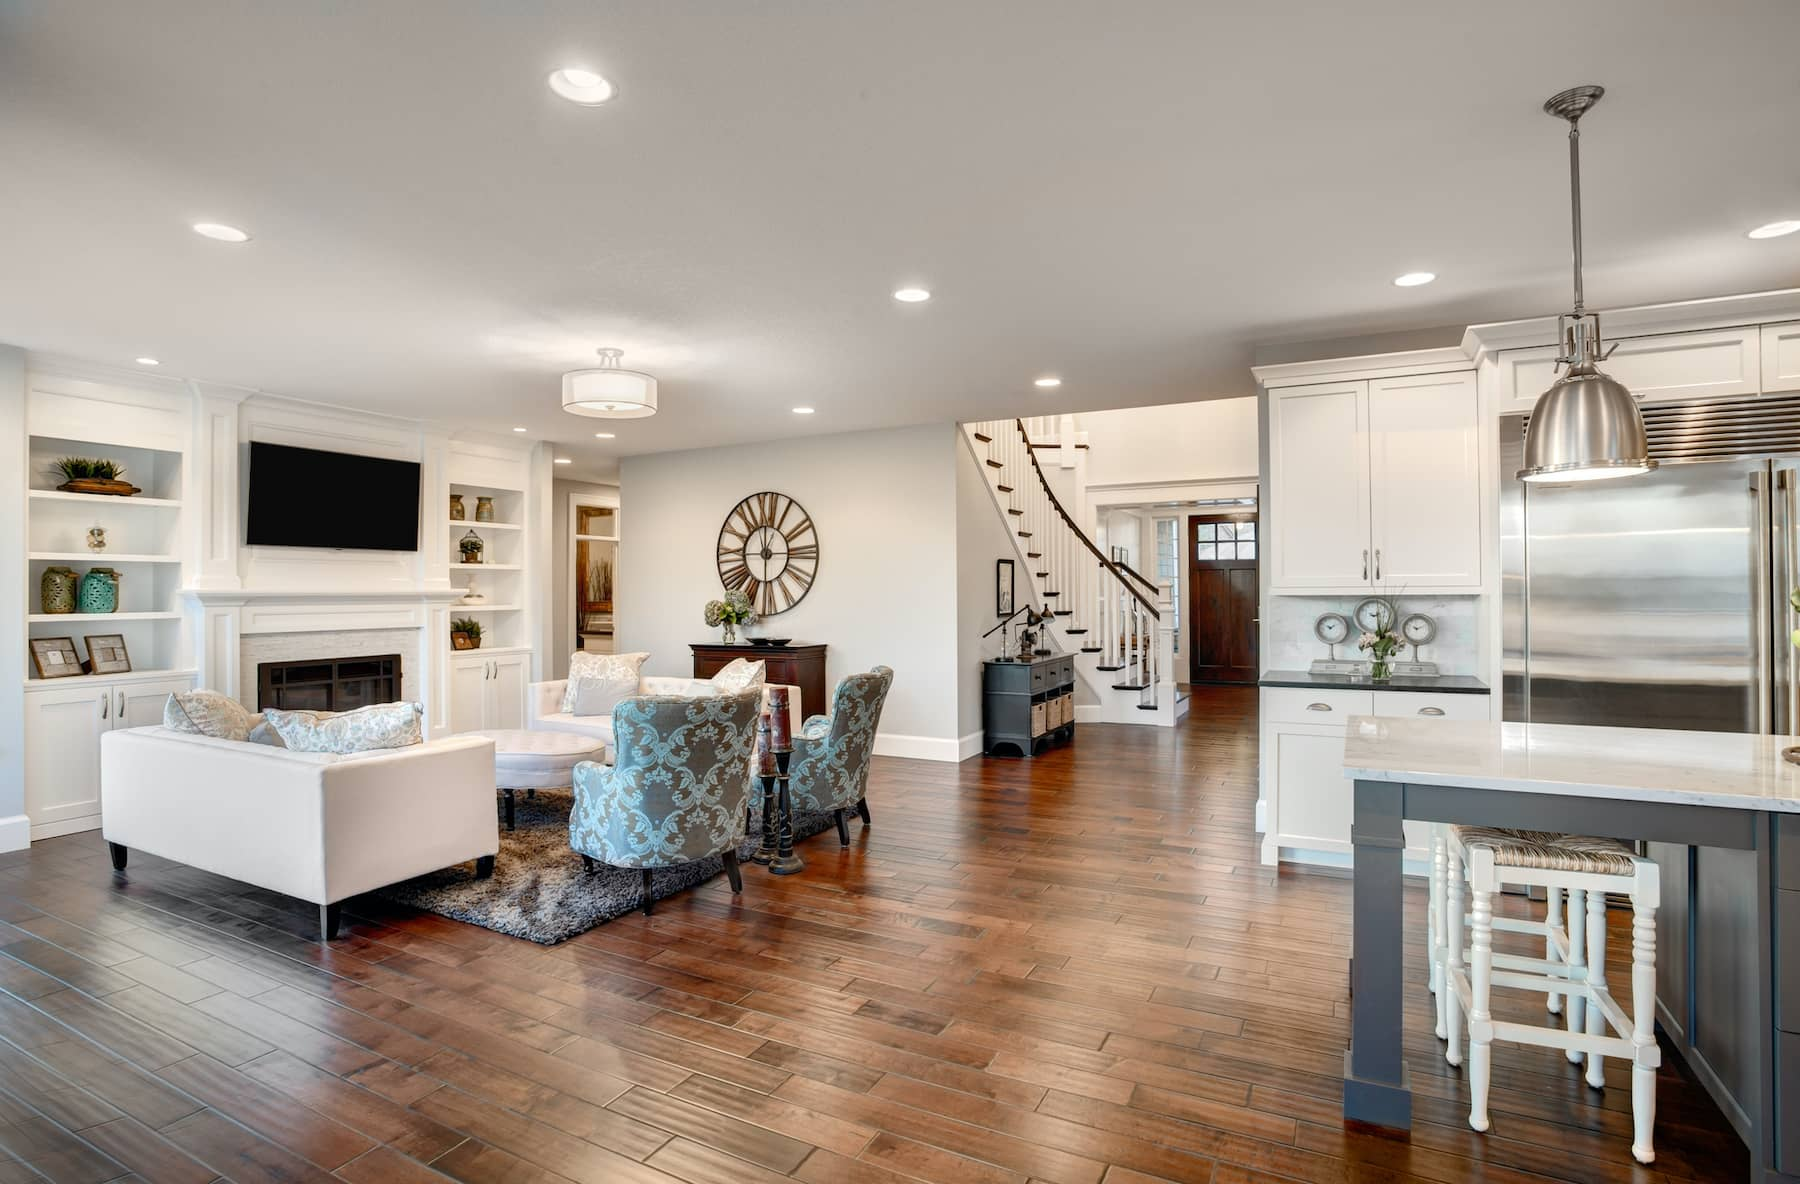 Real Estate Photography Tips - Photographing Houses - Sunny 16